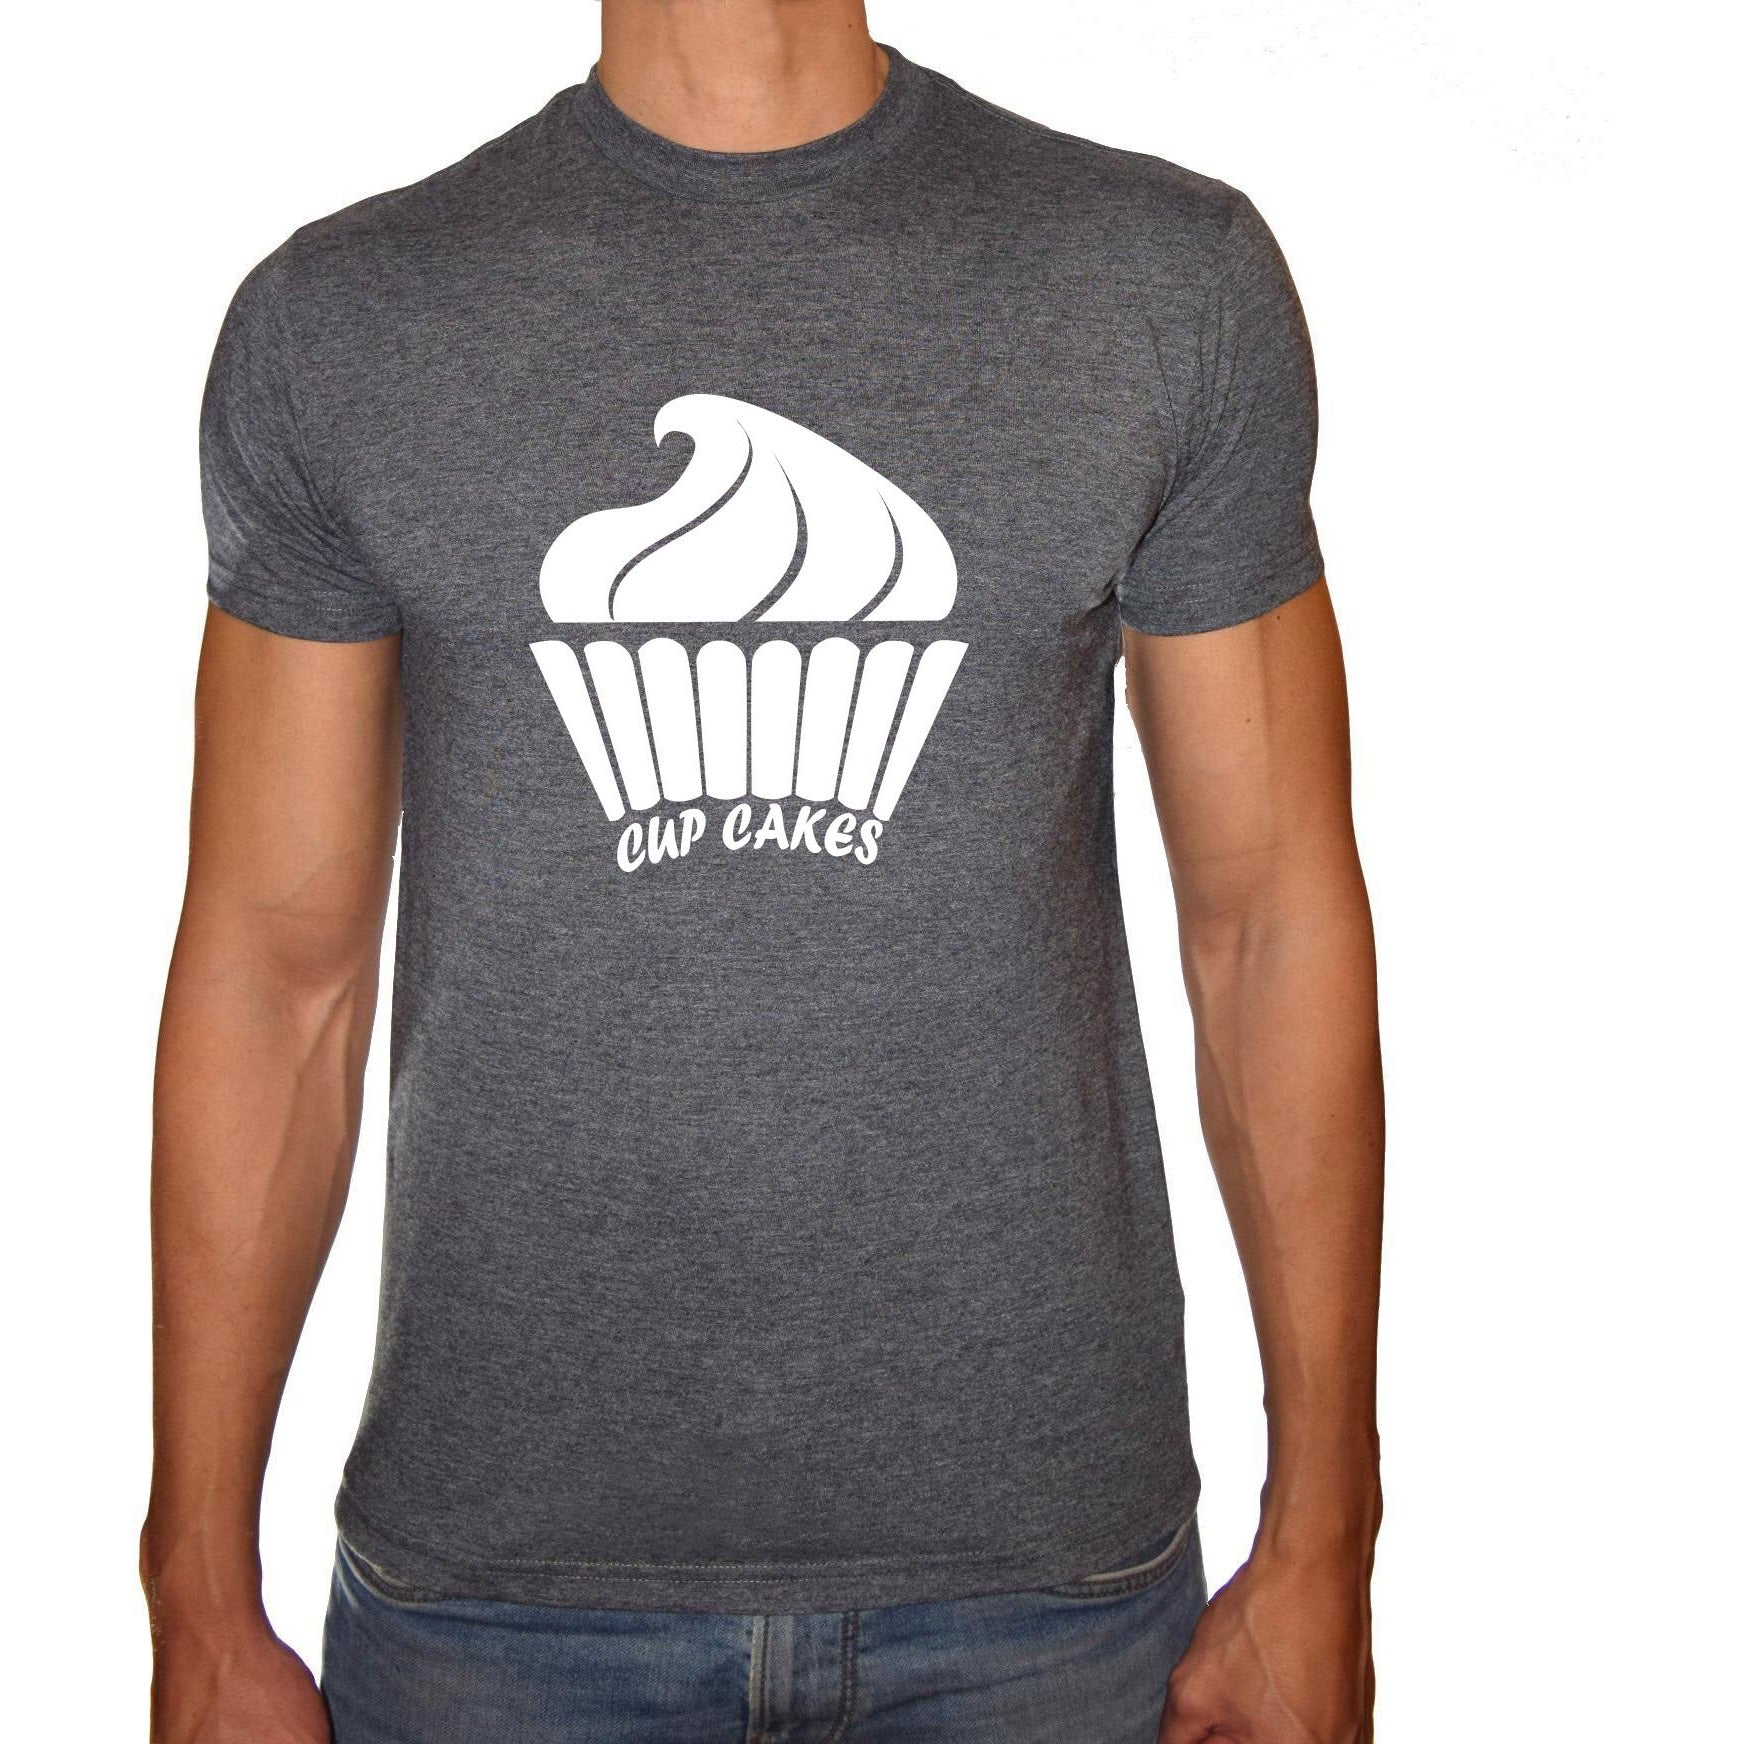 Phoenix CHARCOAL Round Neck Printed T-Shirt Men(cupcakes)